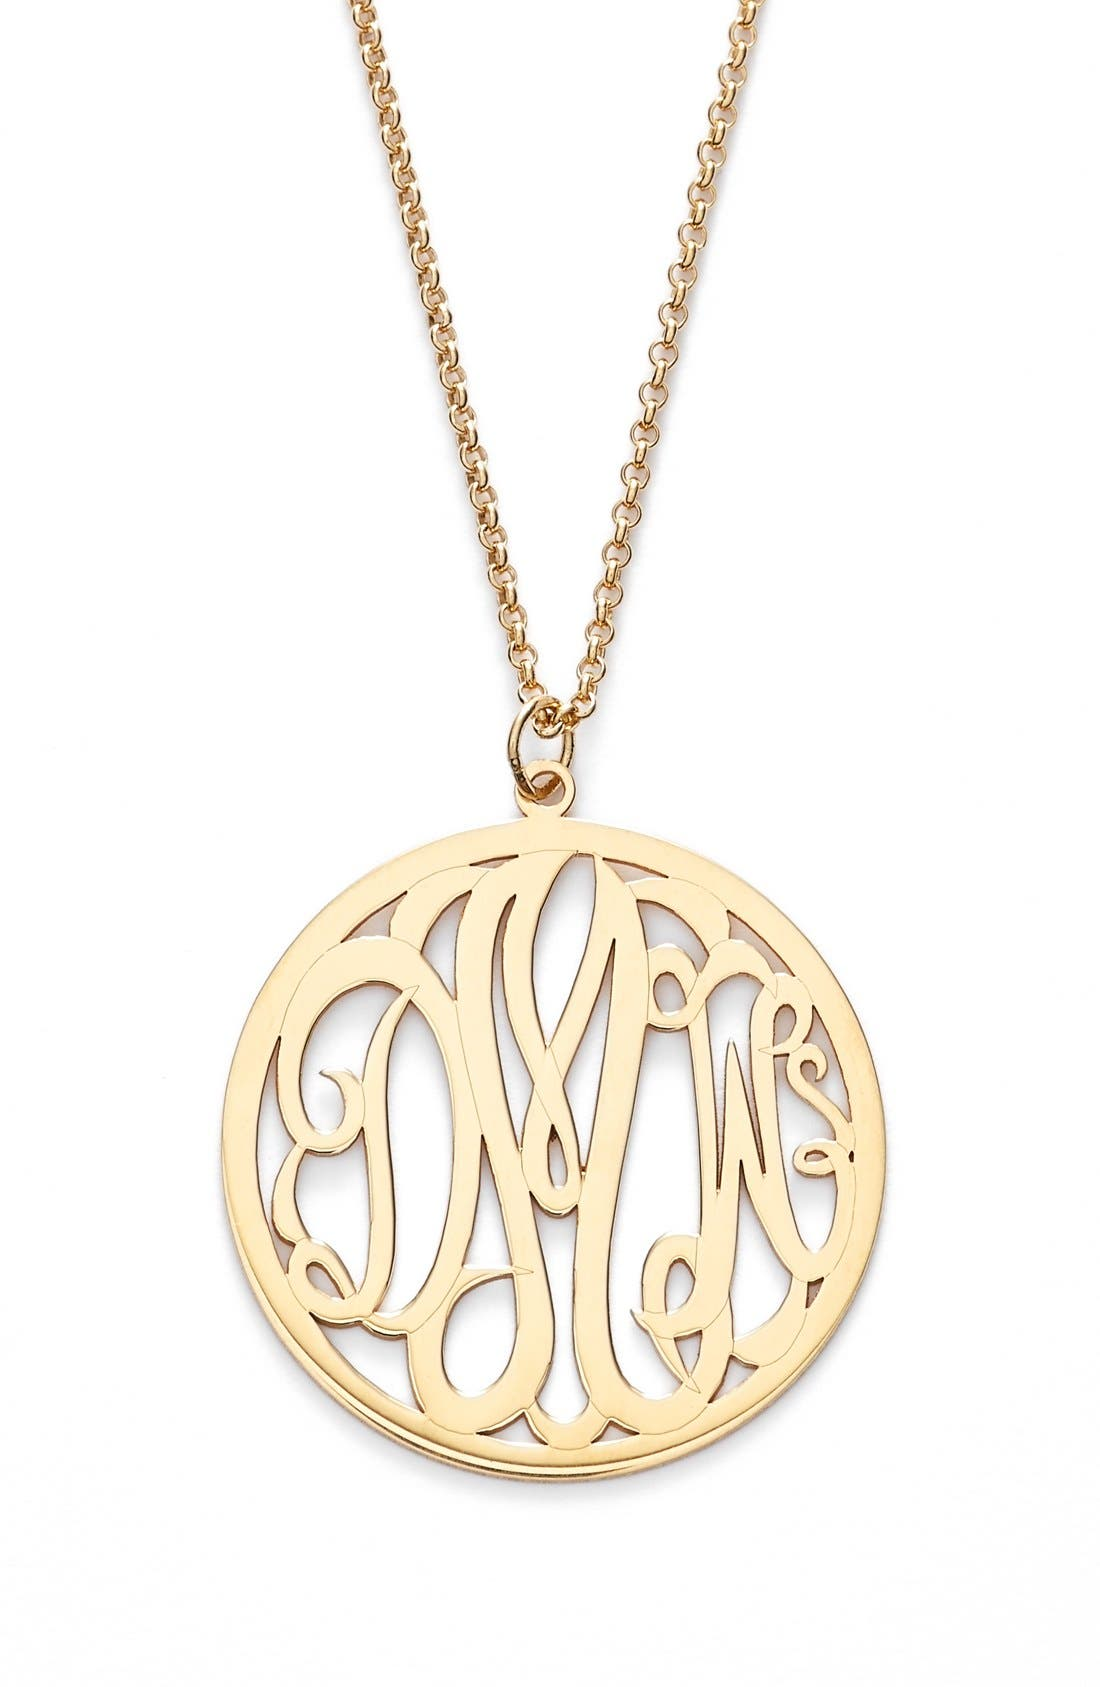 Personalized 3-Letter Monogram Necklace,                         Main,                         color, GOLD